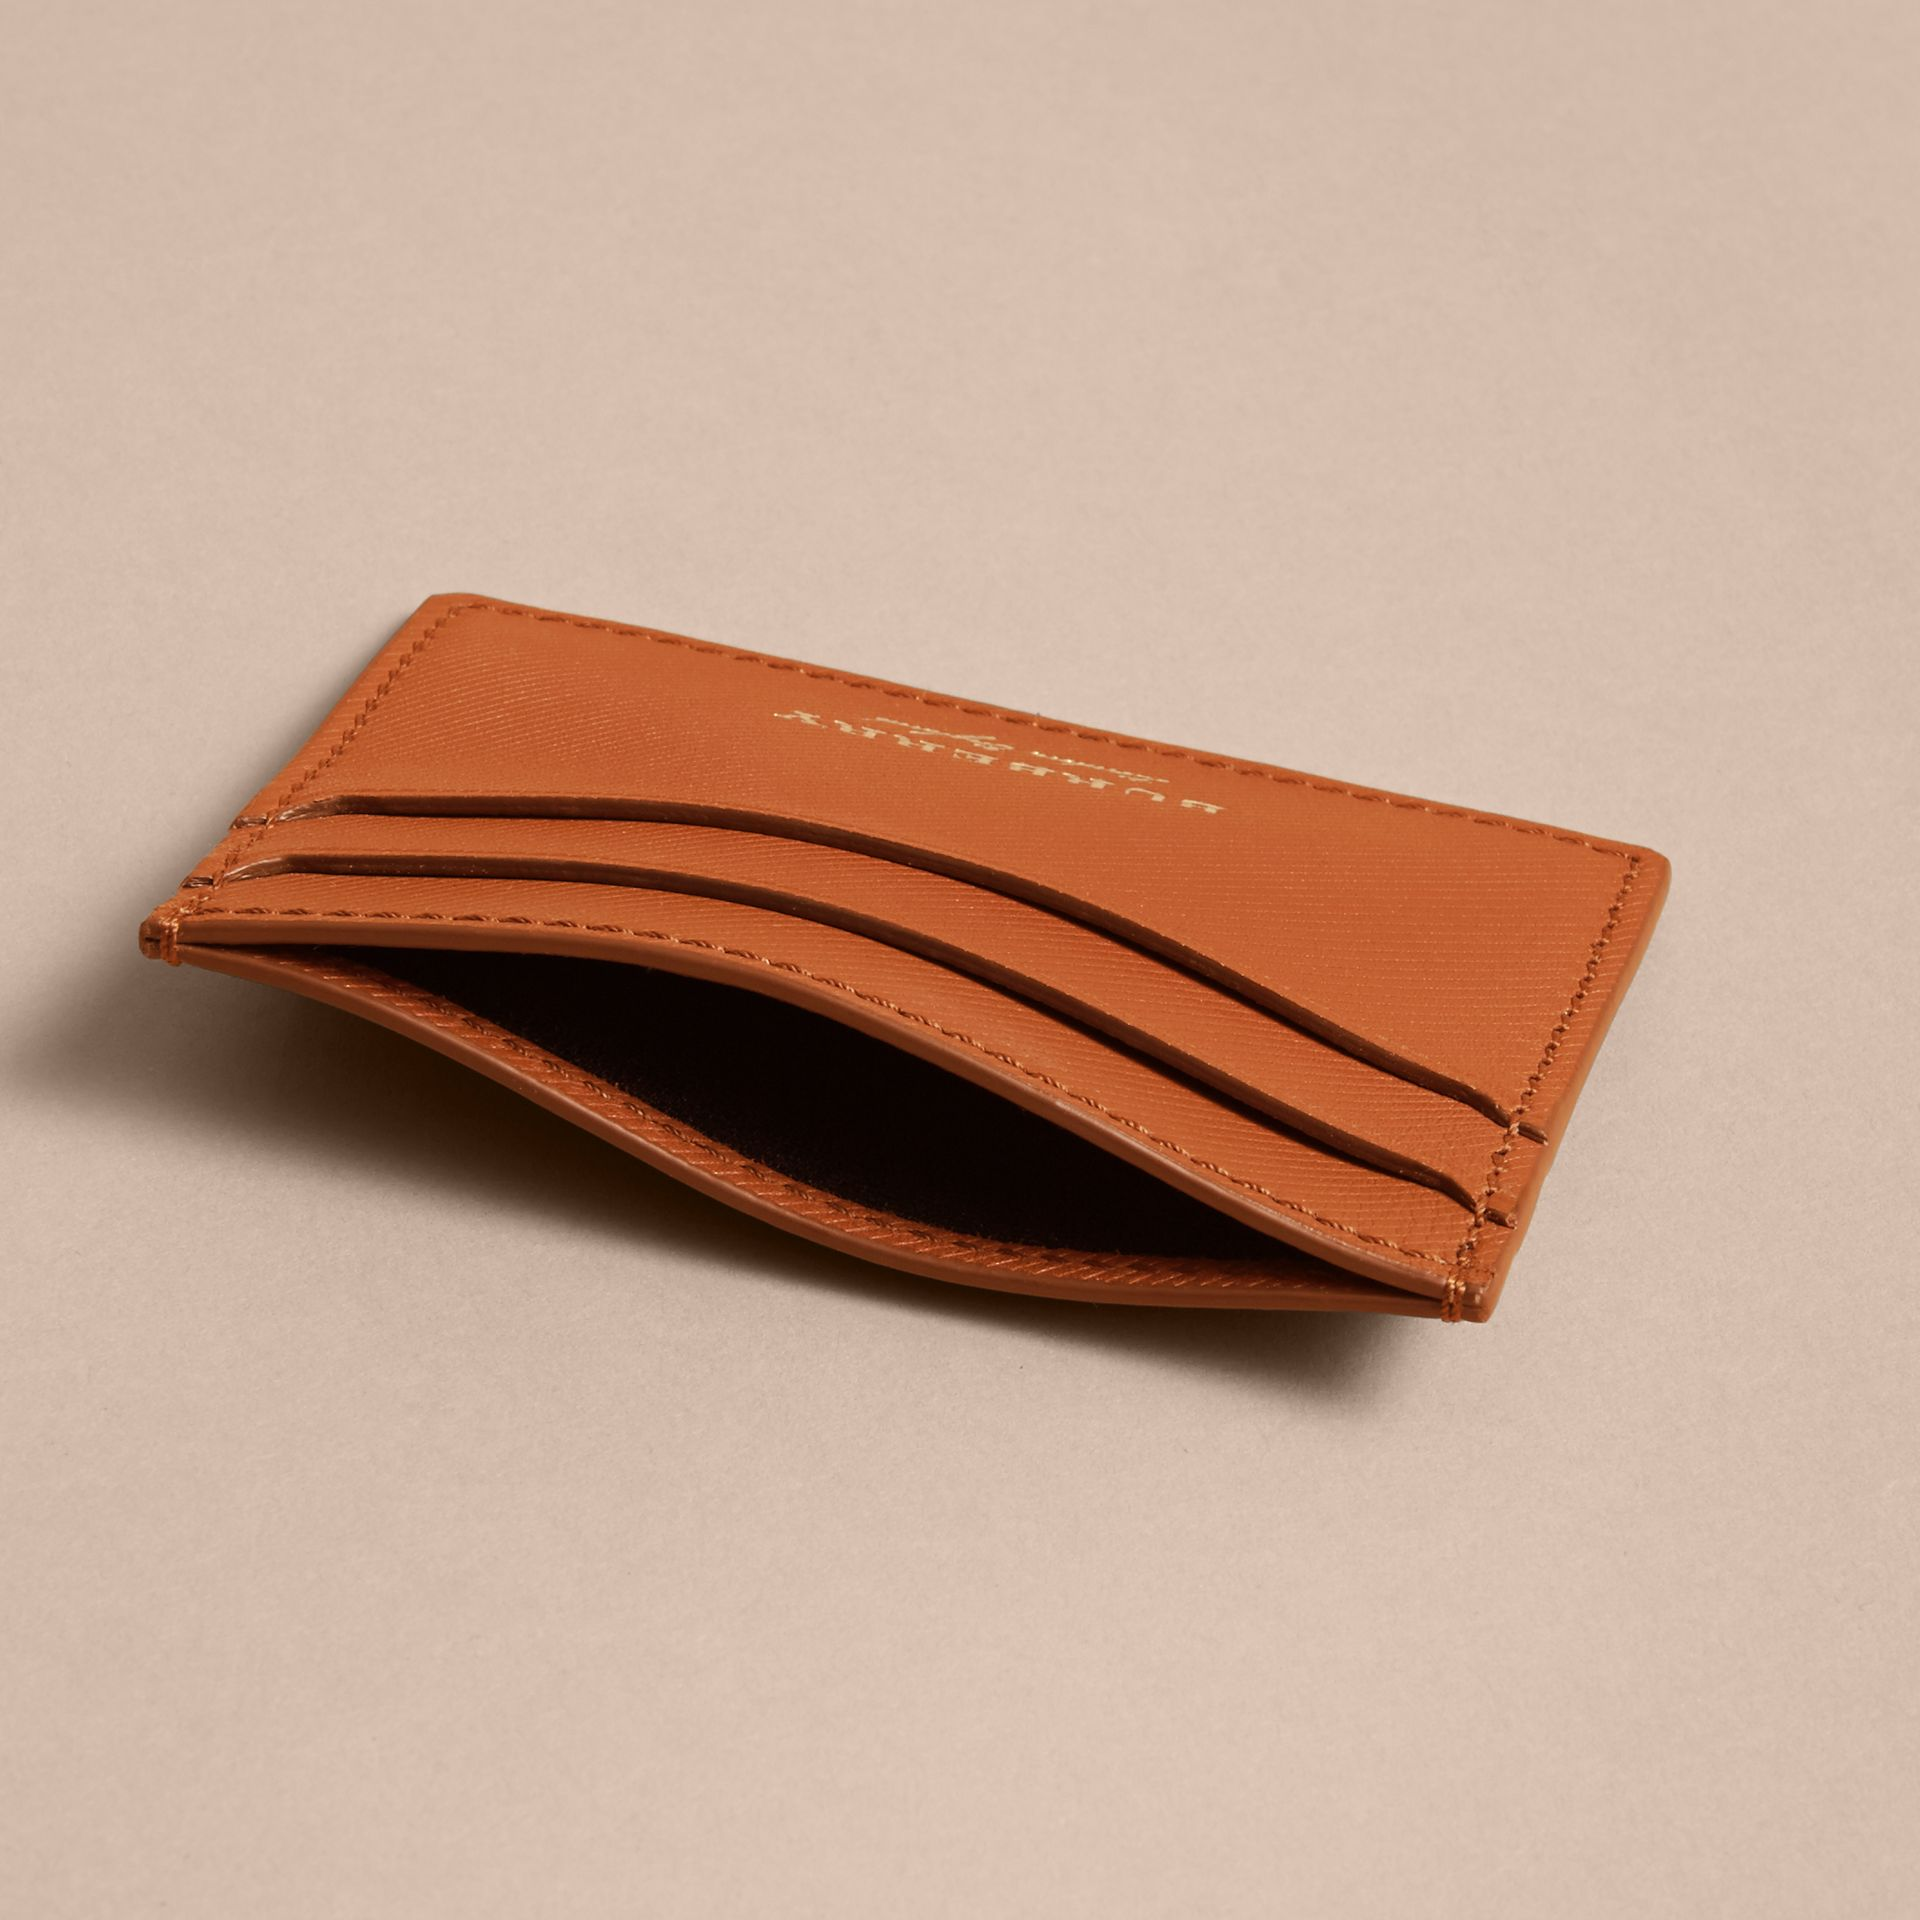 Trench Leather Card Case in Tan - Men | Burberry Hong Kong - gallery image 4